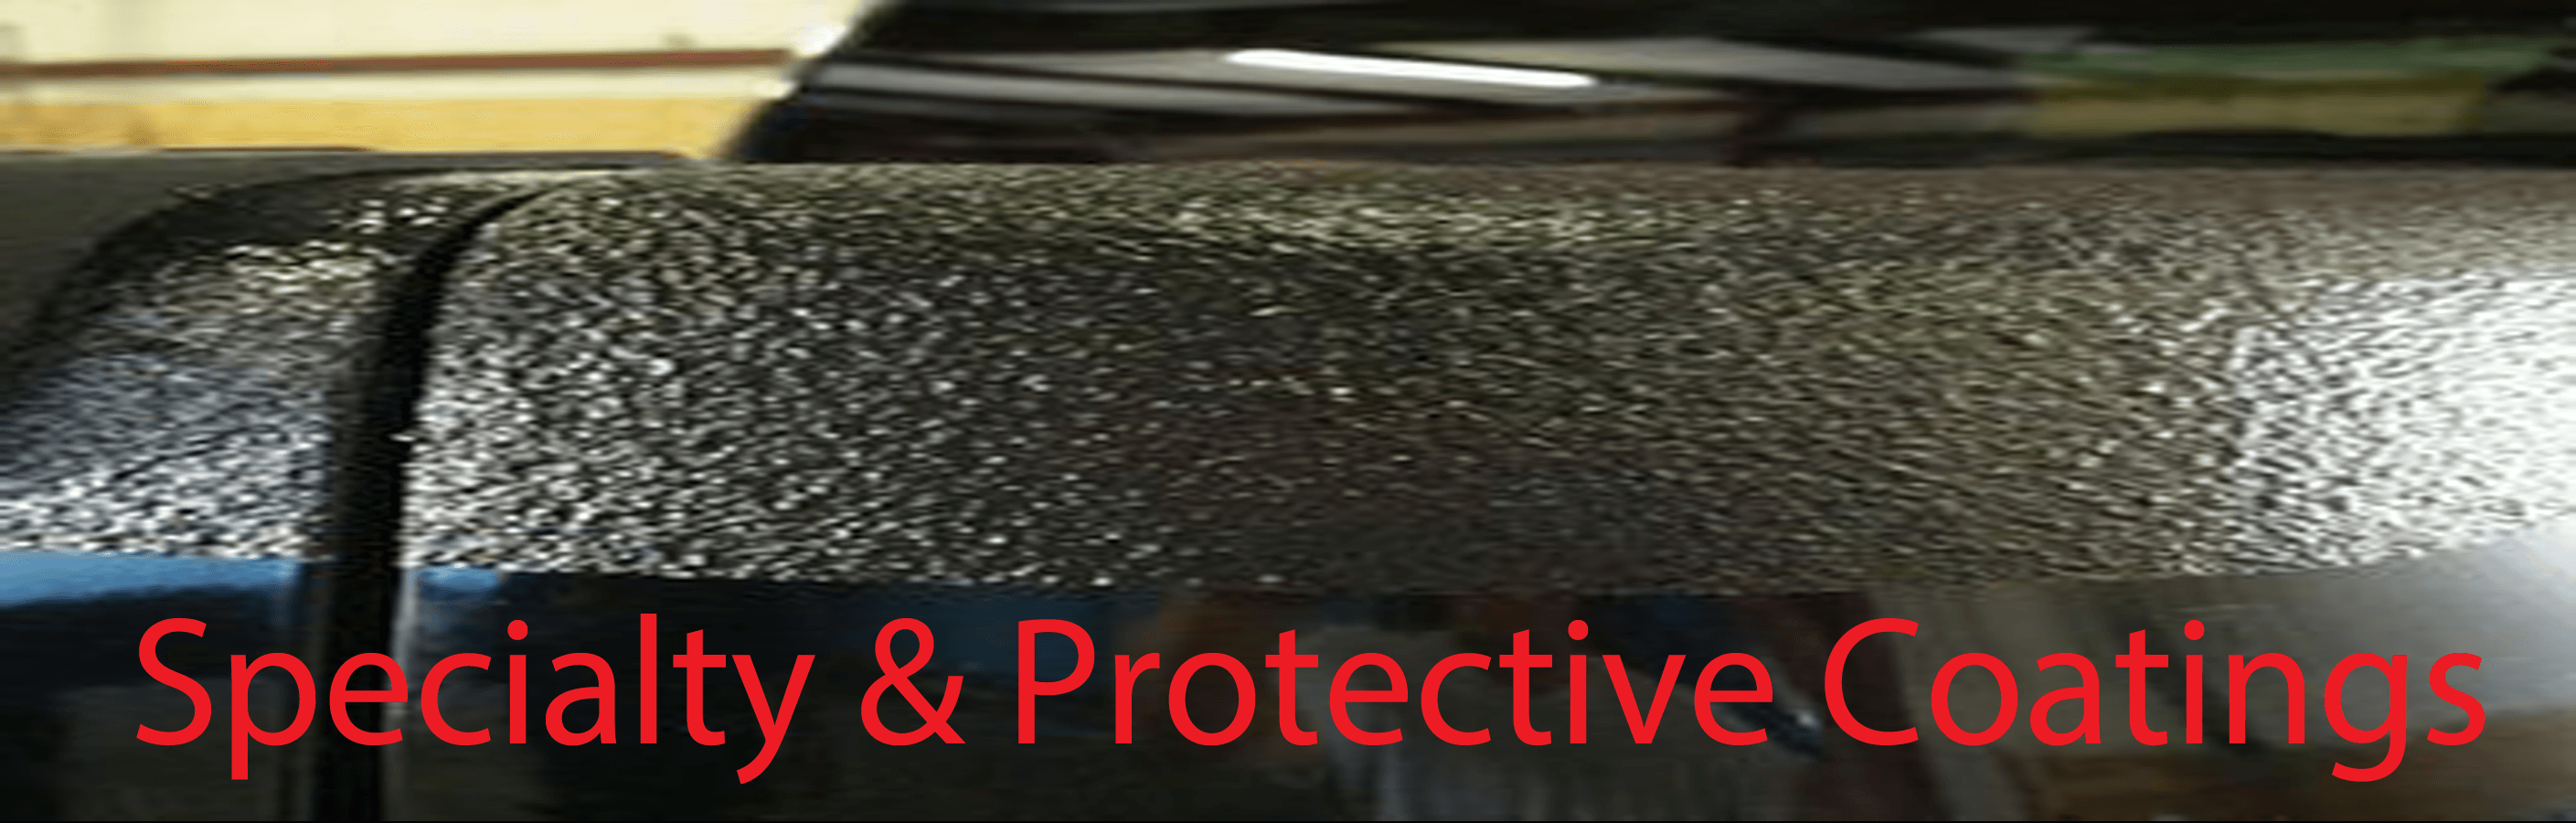 Specialty_Protective_Banner